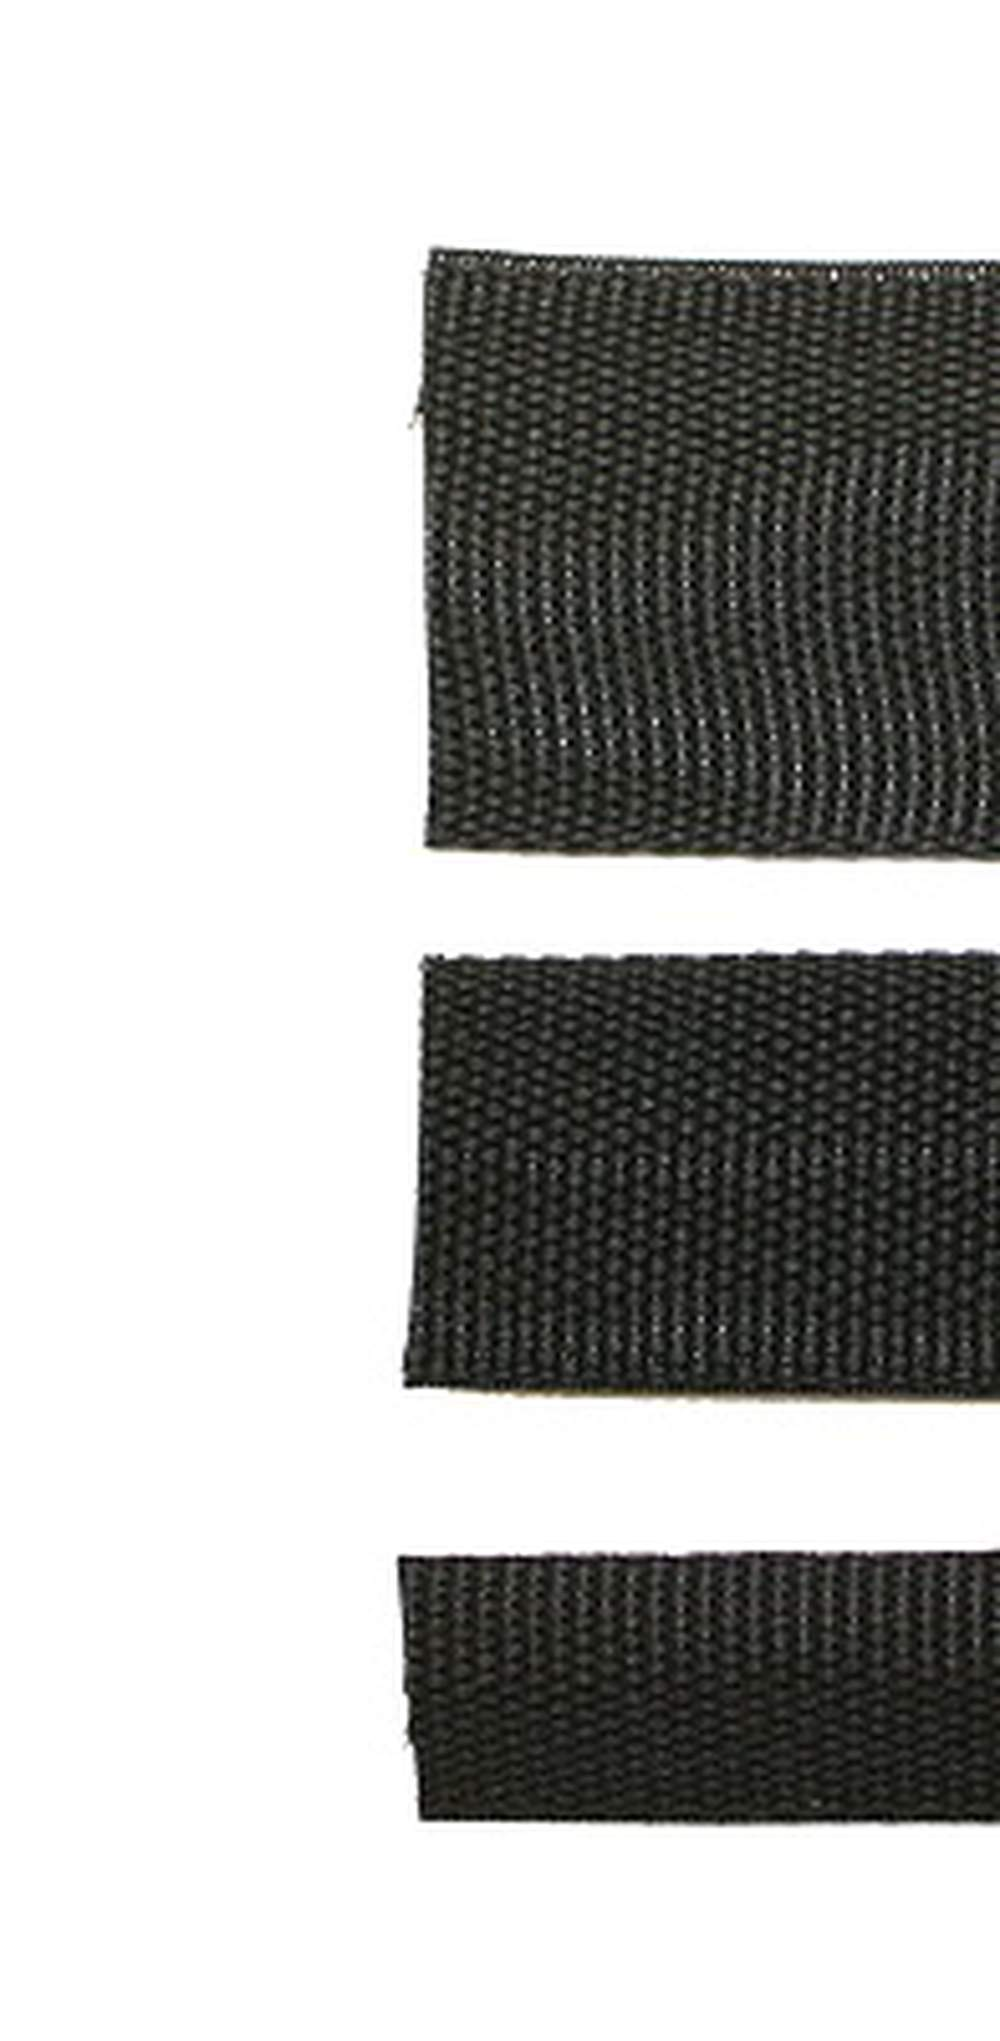 BW-10K 1 Braided Fabric Heat Shrink Wire Covering - 50 FT